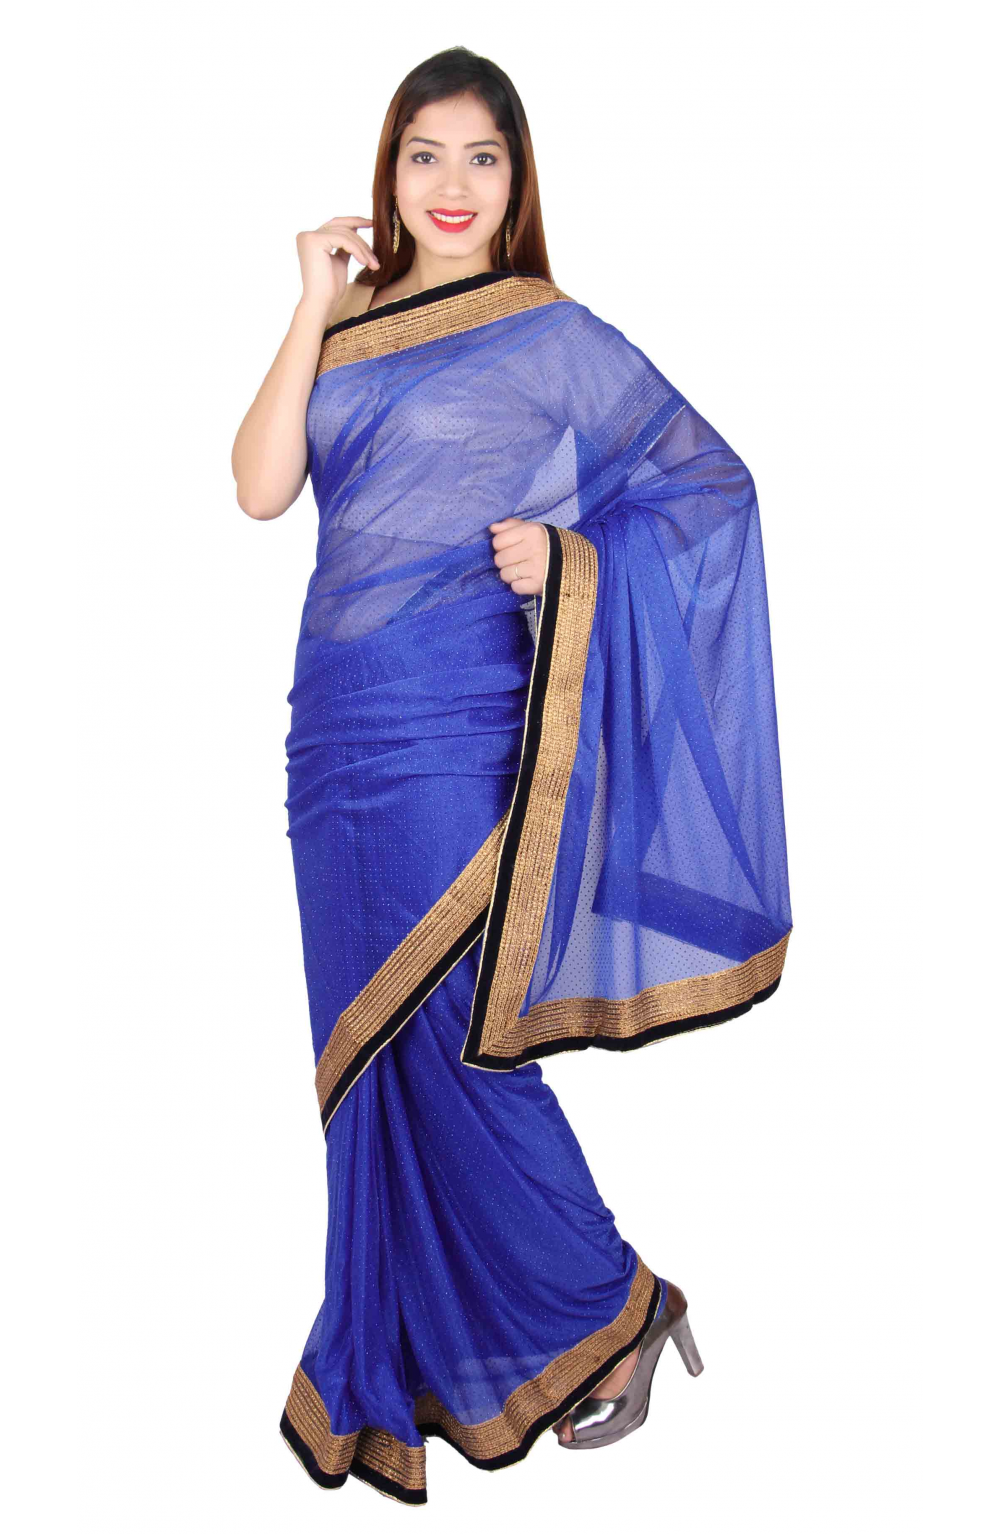 71a8821a535b05 Buy Online Indian Blue Saree for Bollywood theme Party wear with ...